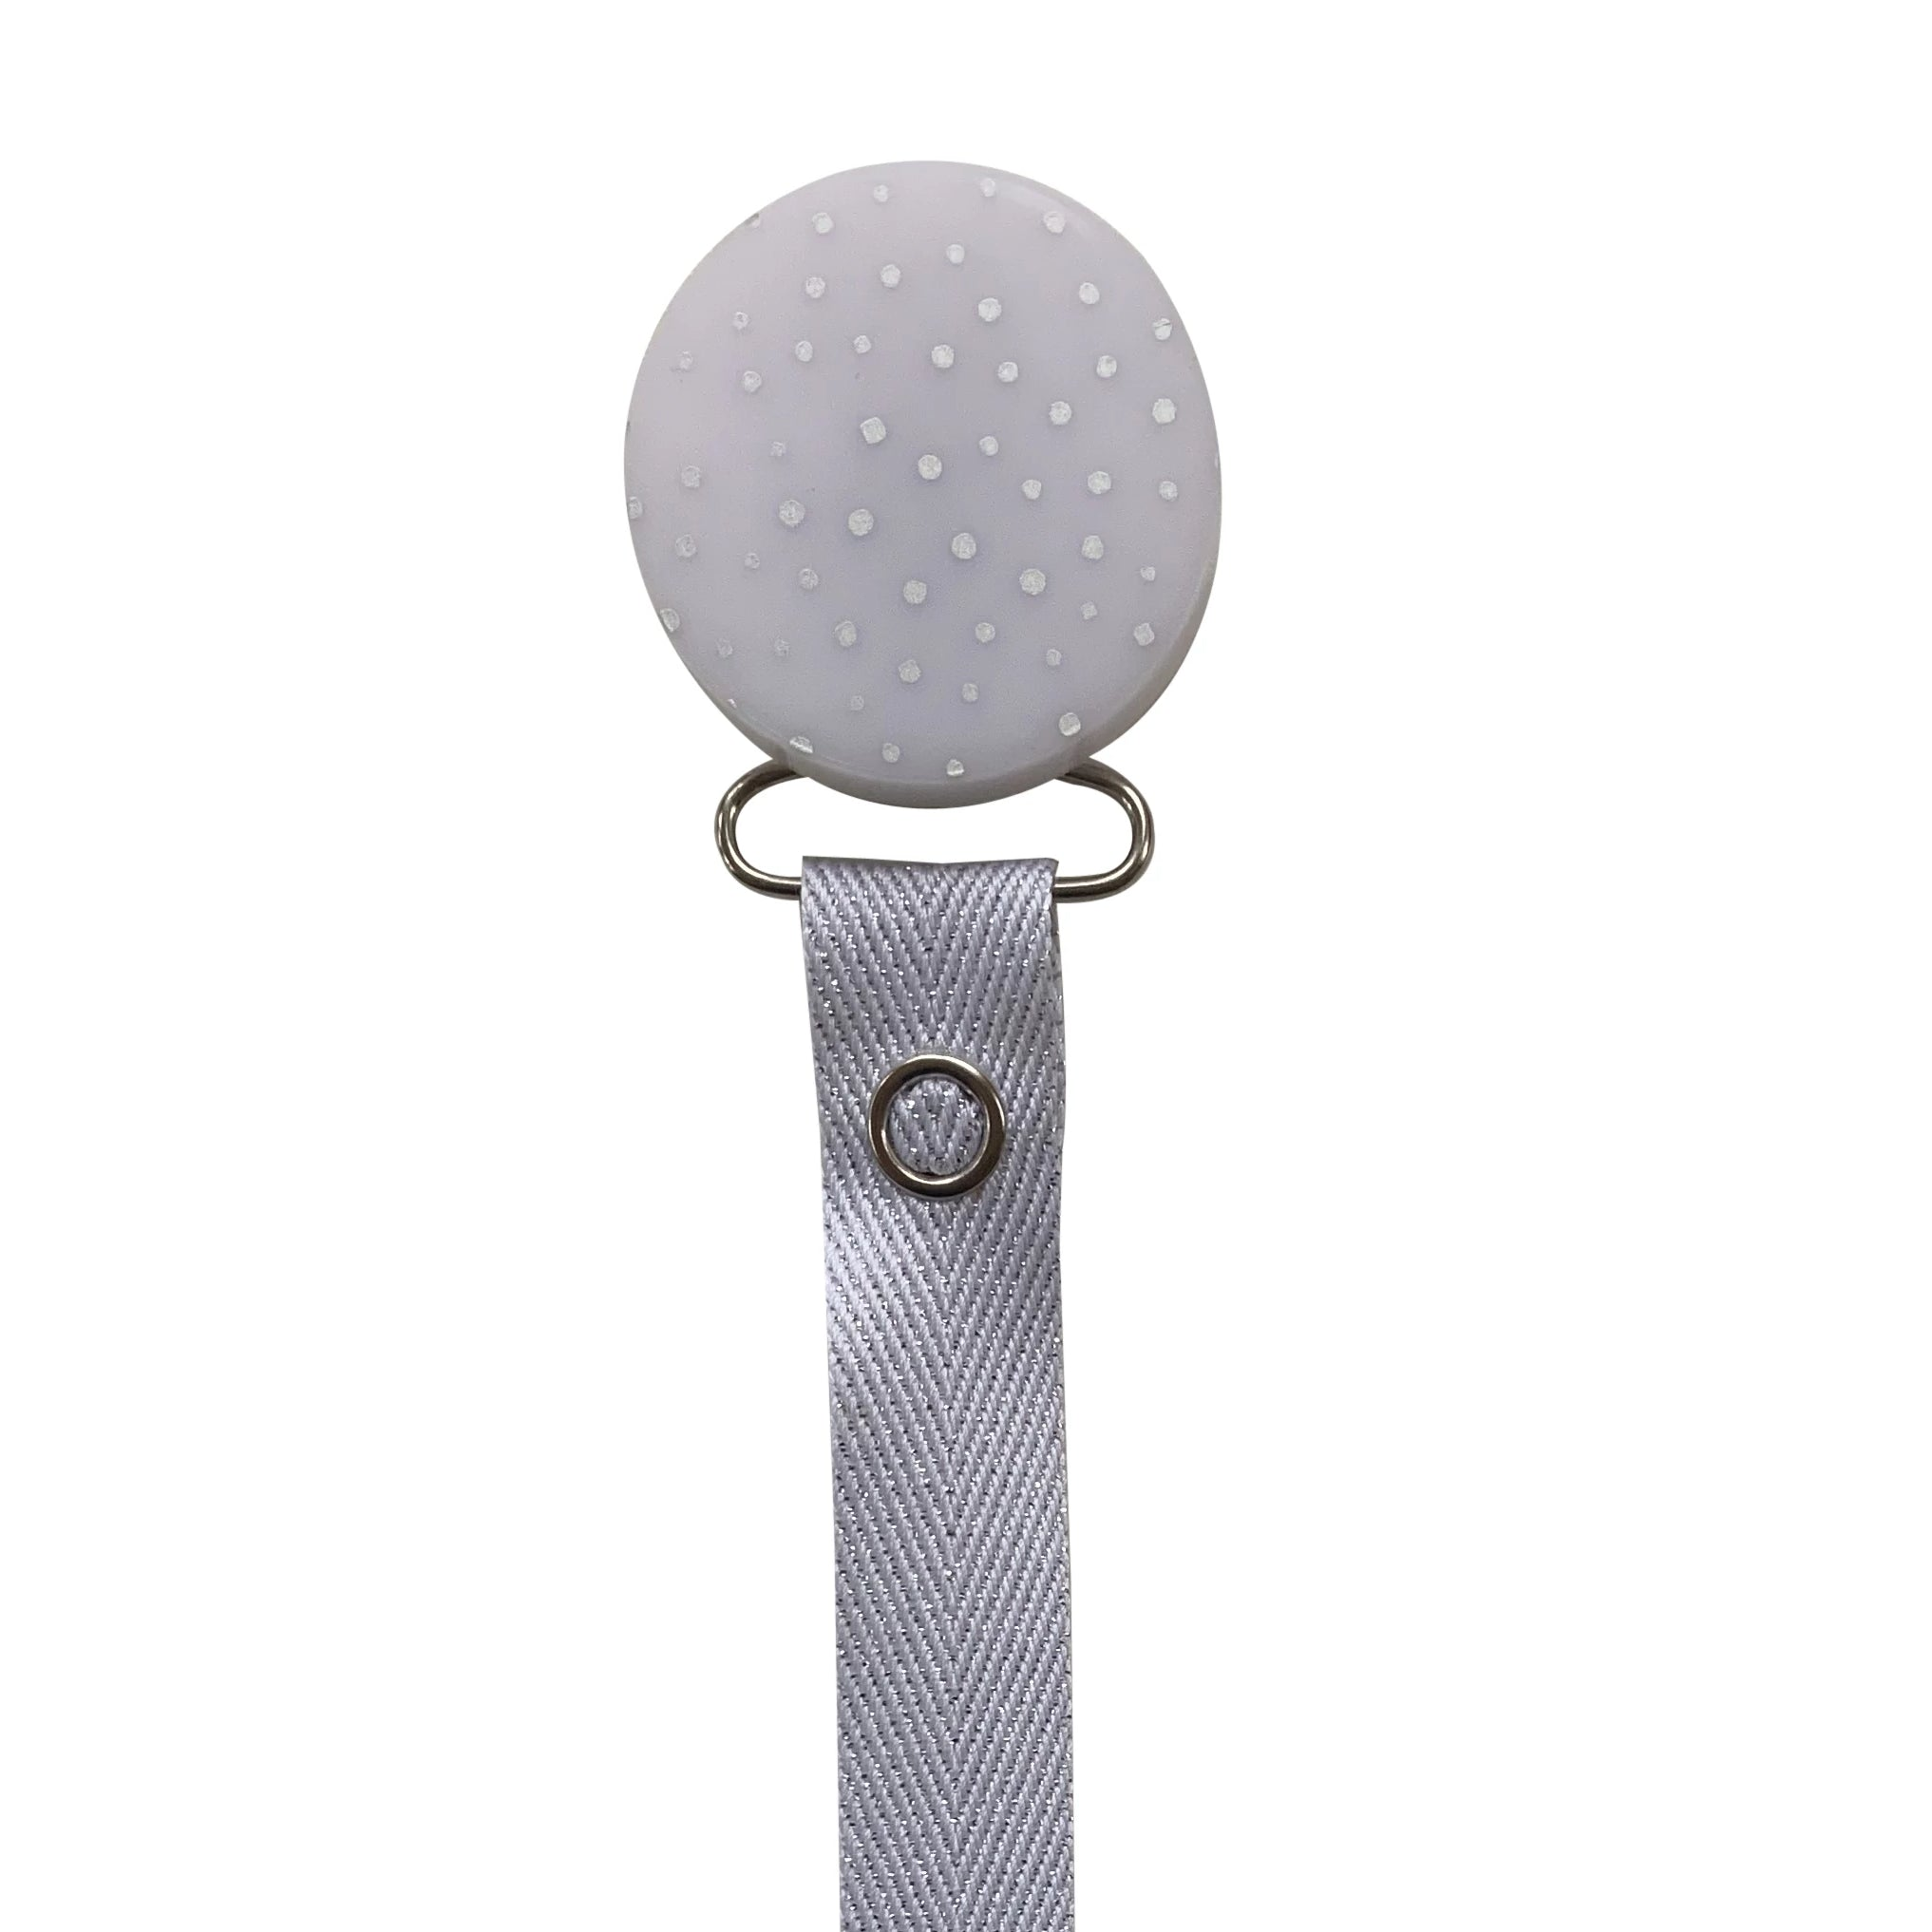 Classy Paci CHIC Grey Silver Polka Dot with heart Round pacifier clip